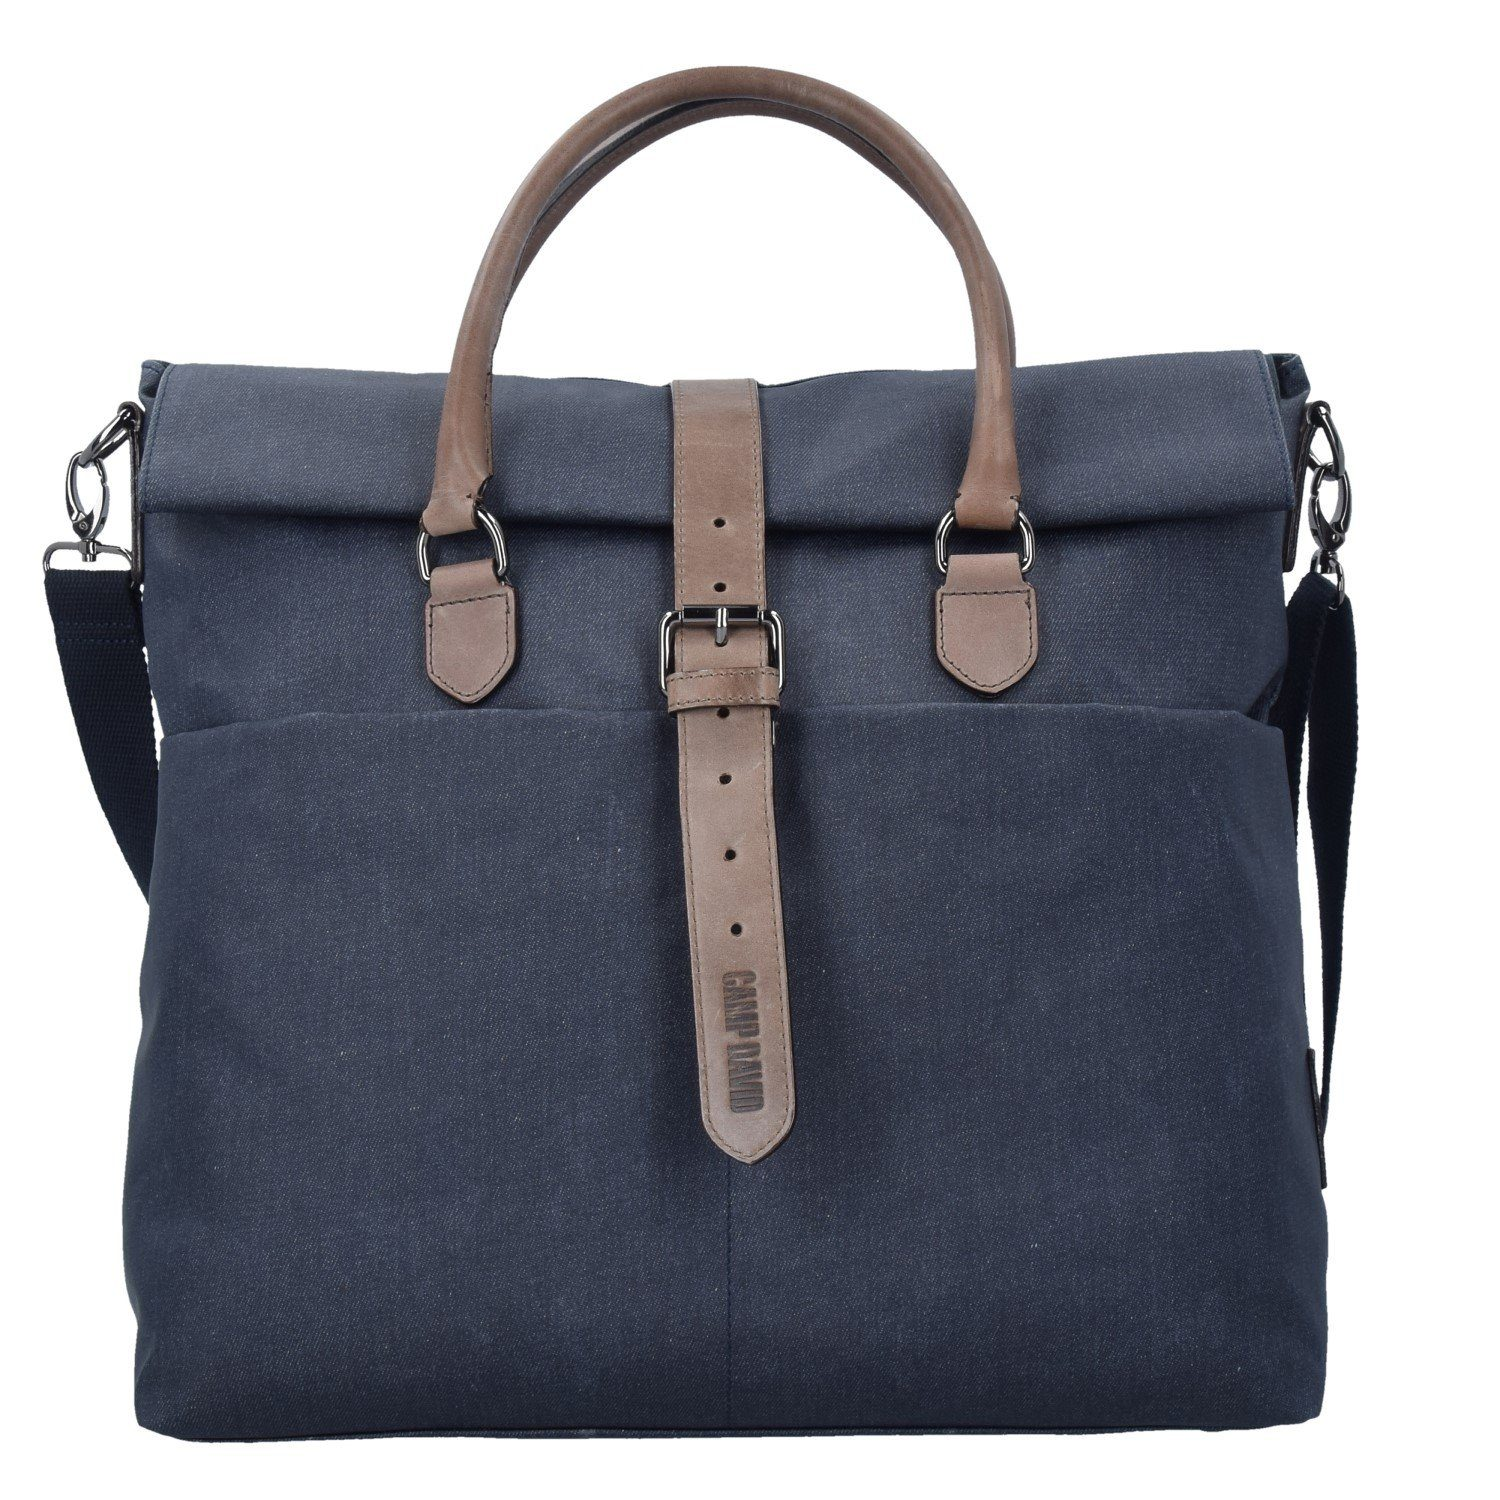 CAMP DAVID Newark Shopper Tasche 40 cm Laptopfach